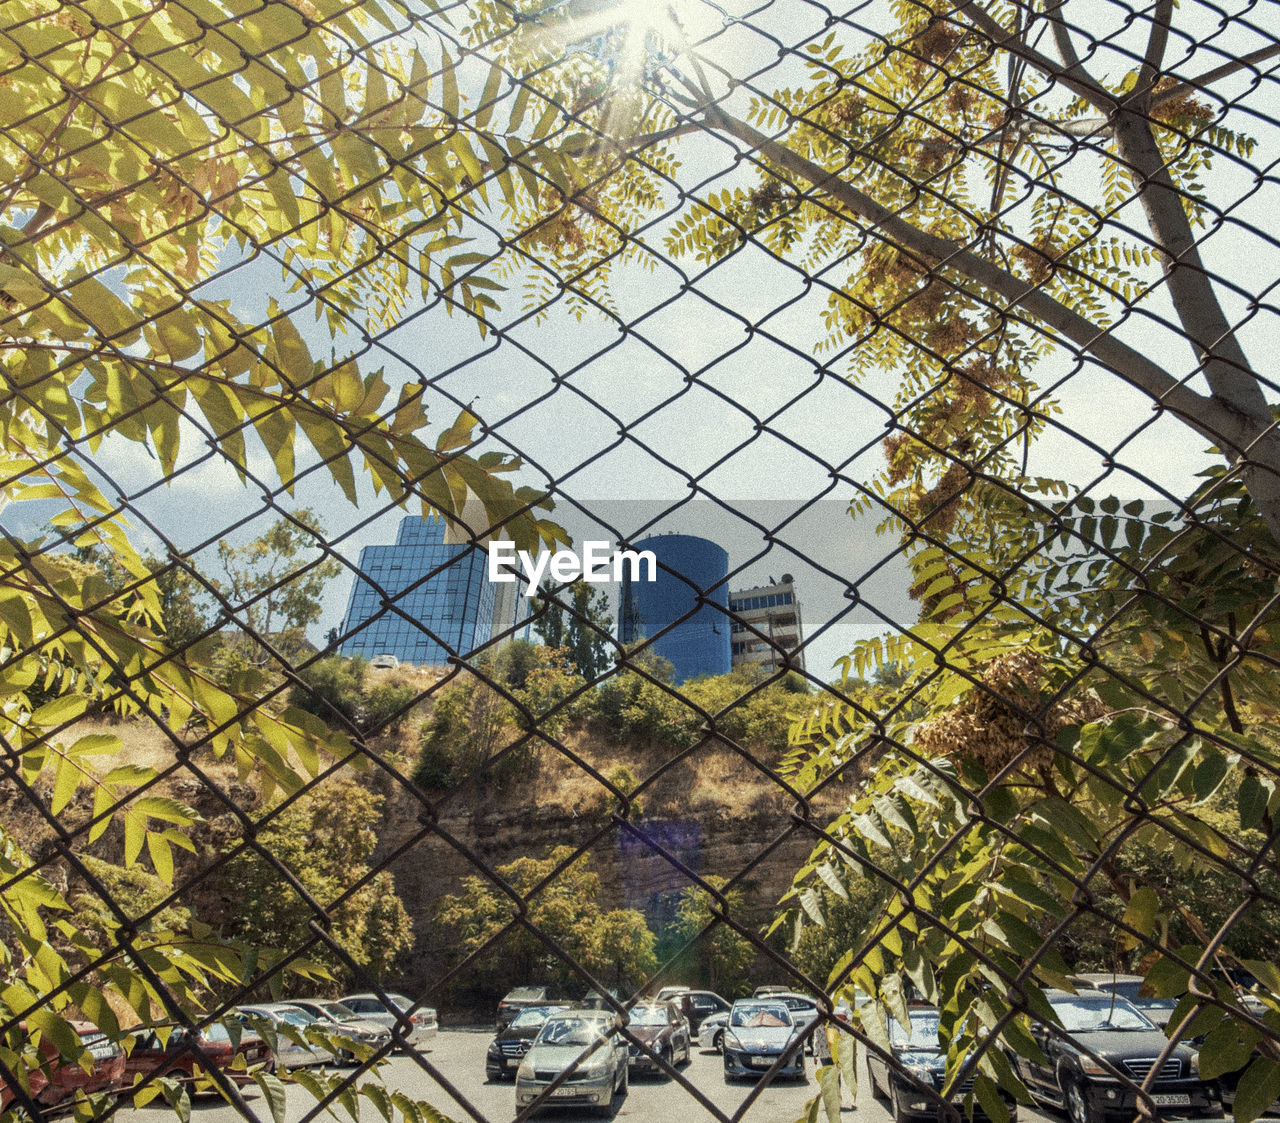 plant, tree, architecture, fence, day, no people, sky, nature, built structure, boundary, security, building exterior, barrier, building, outdoors, safety, protection, chainlink fence, window, pattern